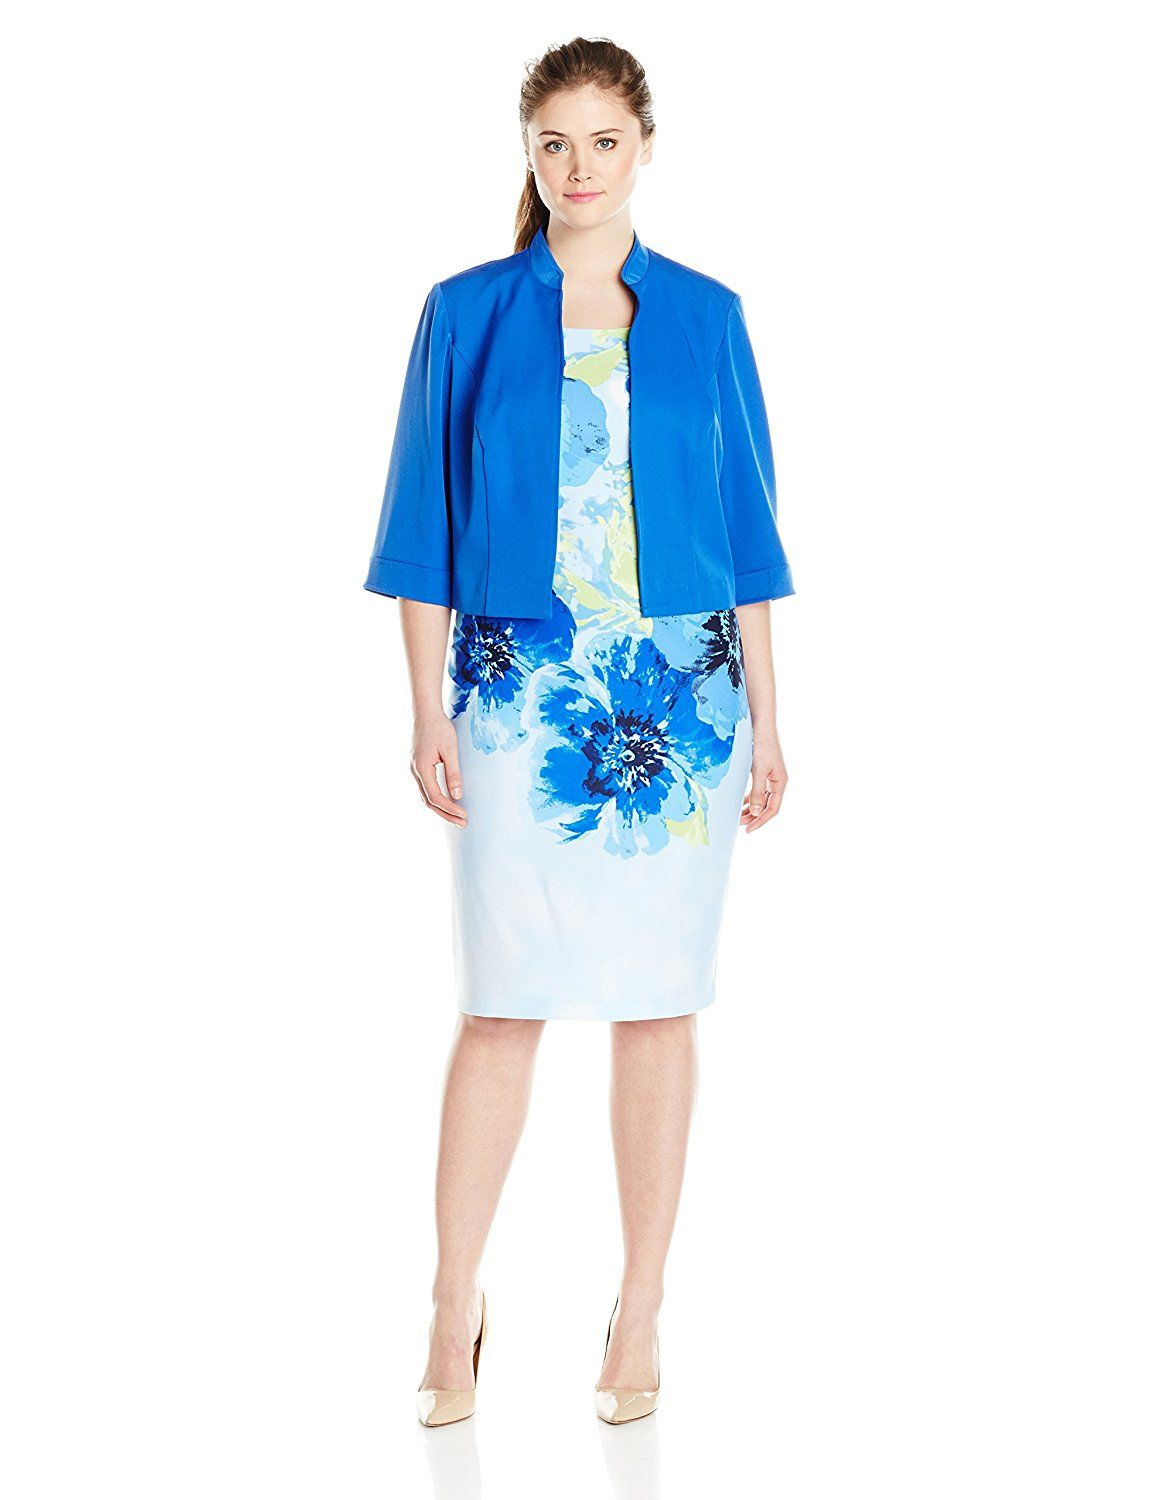 94cbca084b7 Maya Brooke Women s Plus-Size Floral Place Print Jacket and Dress Set      New and awesome product awaits you